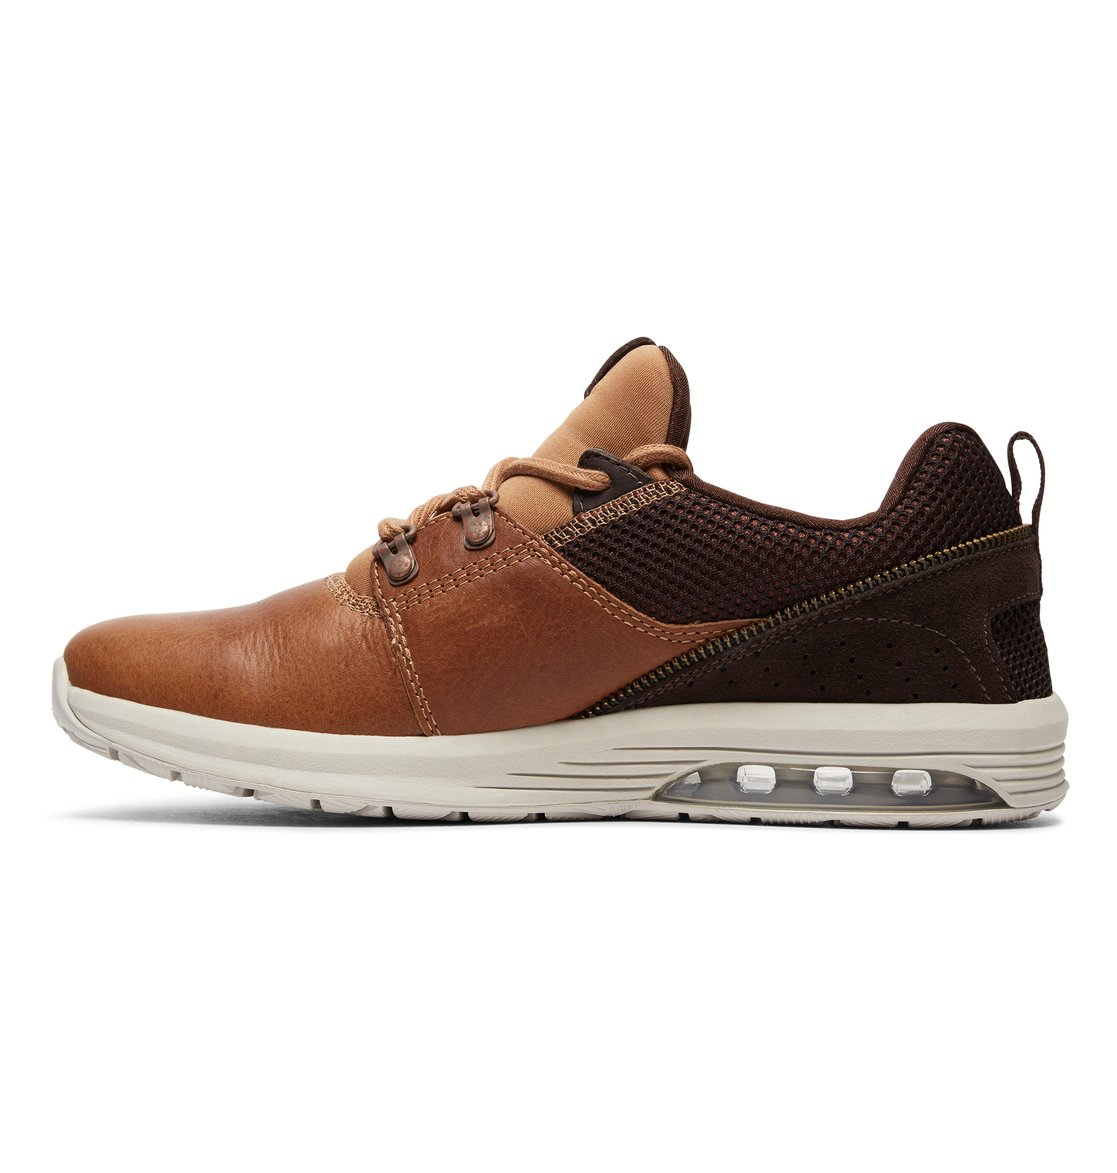 Chaussures DC Shoes Heathrow marron Casual homme